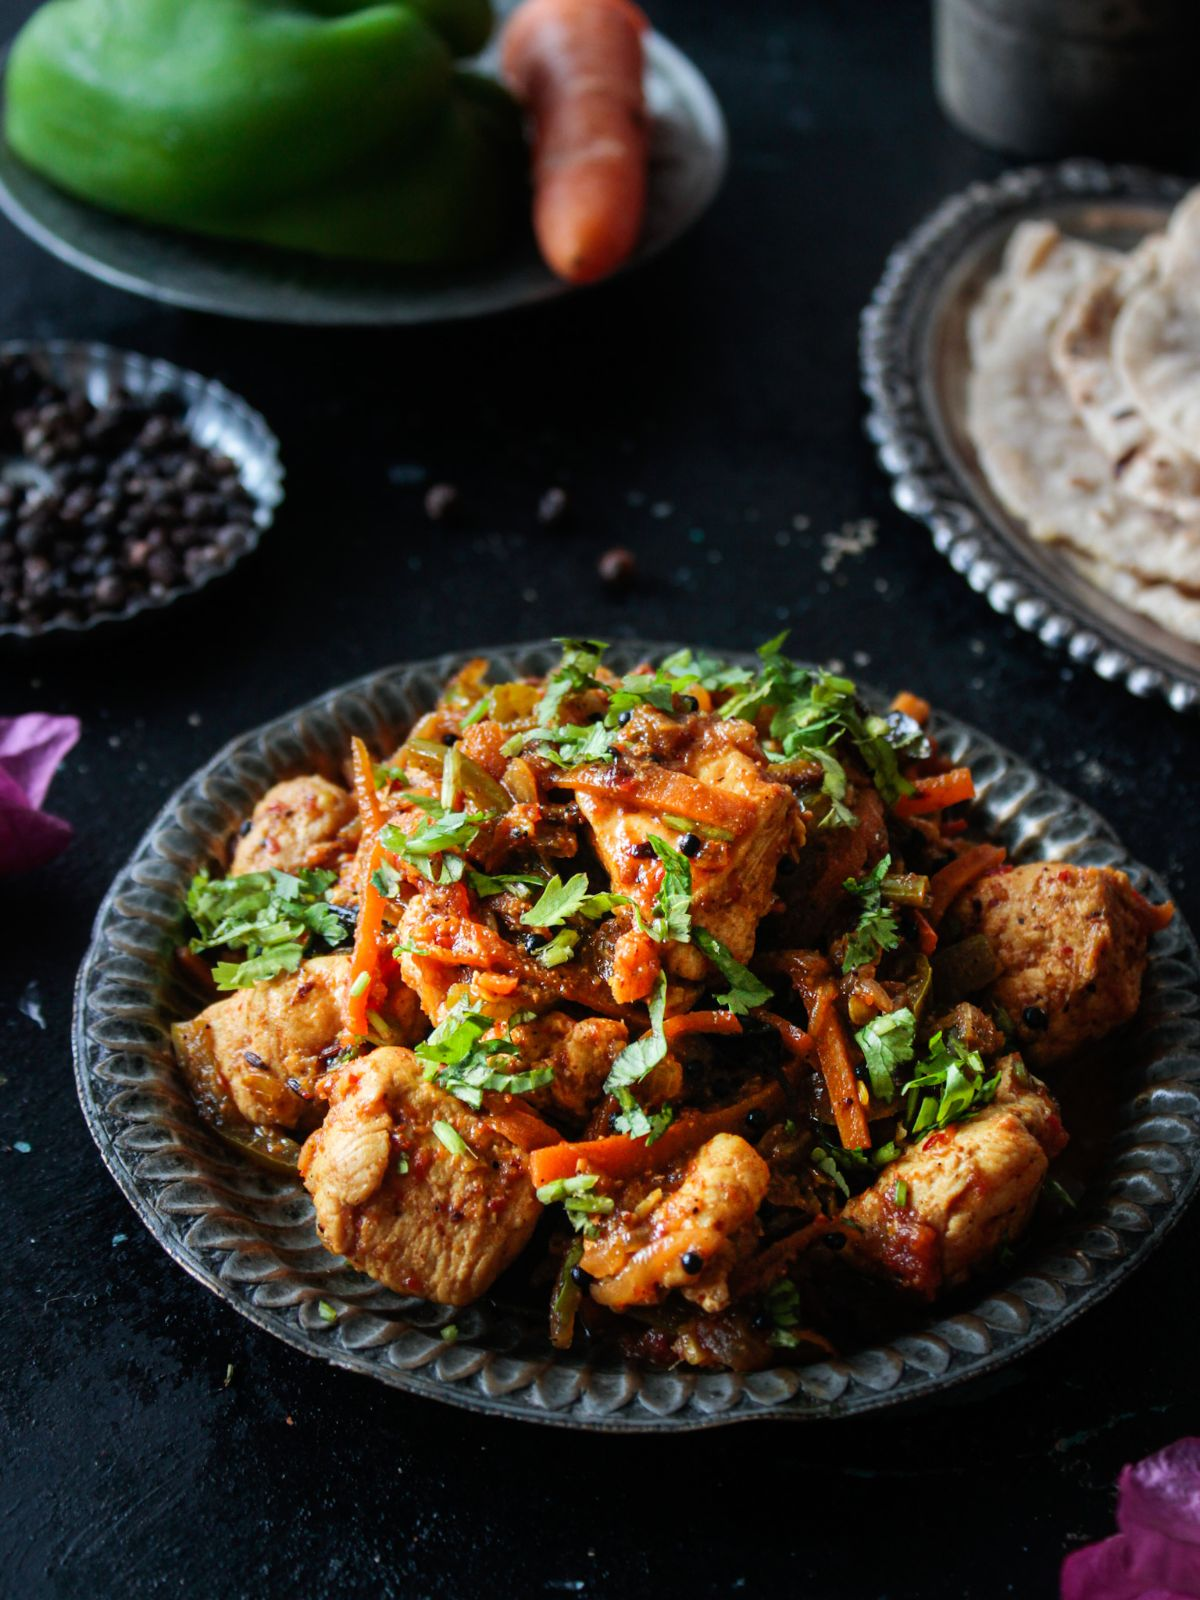 Black plate of chicken with vegetables on black table next to plate of naan